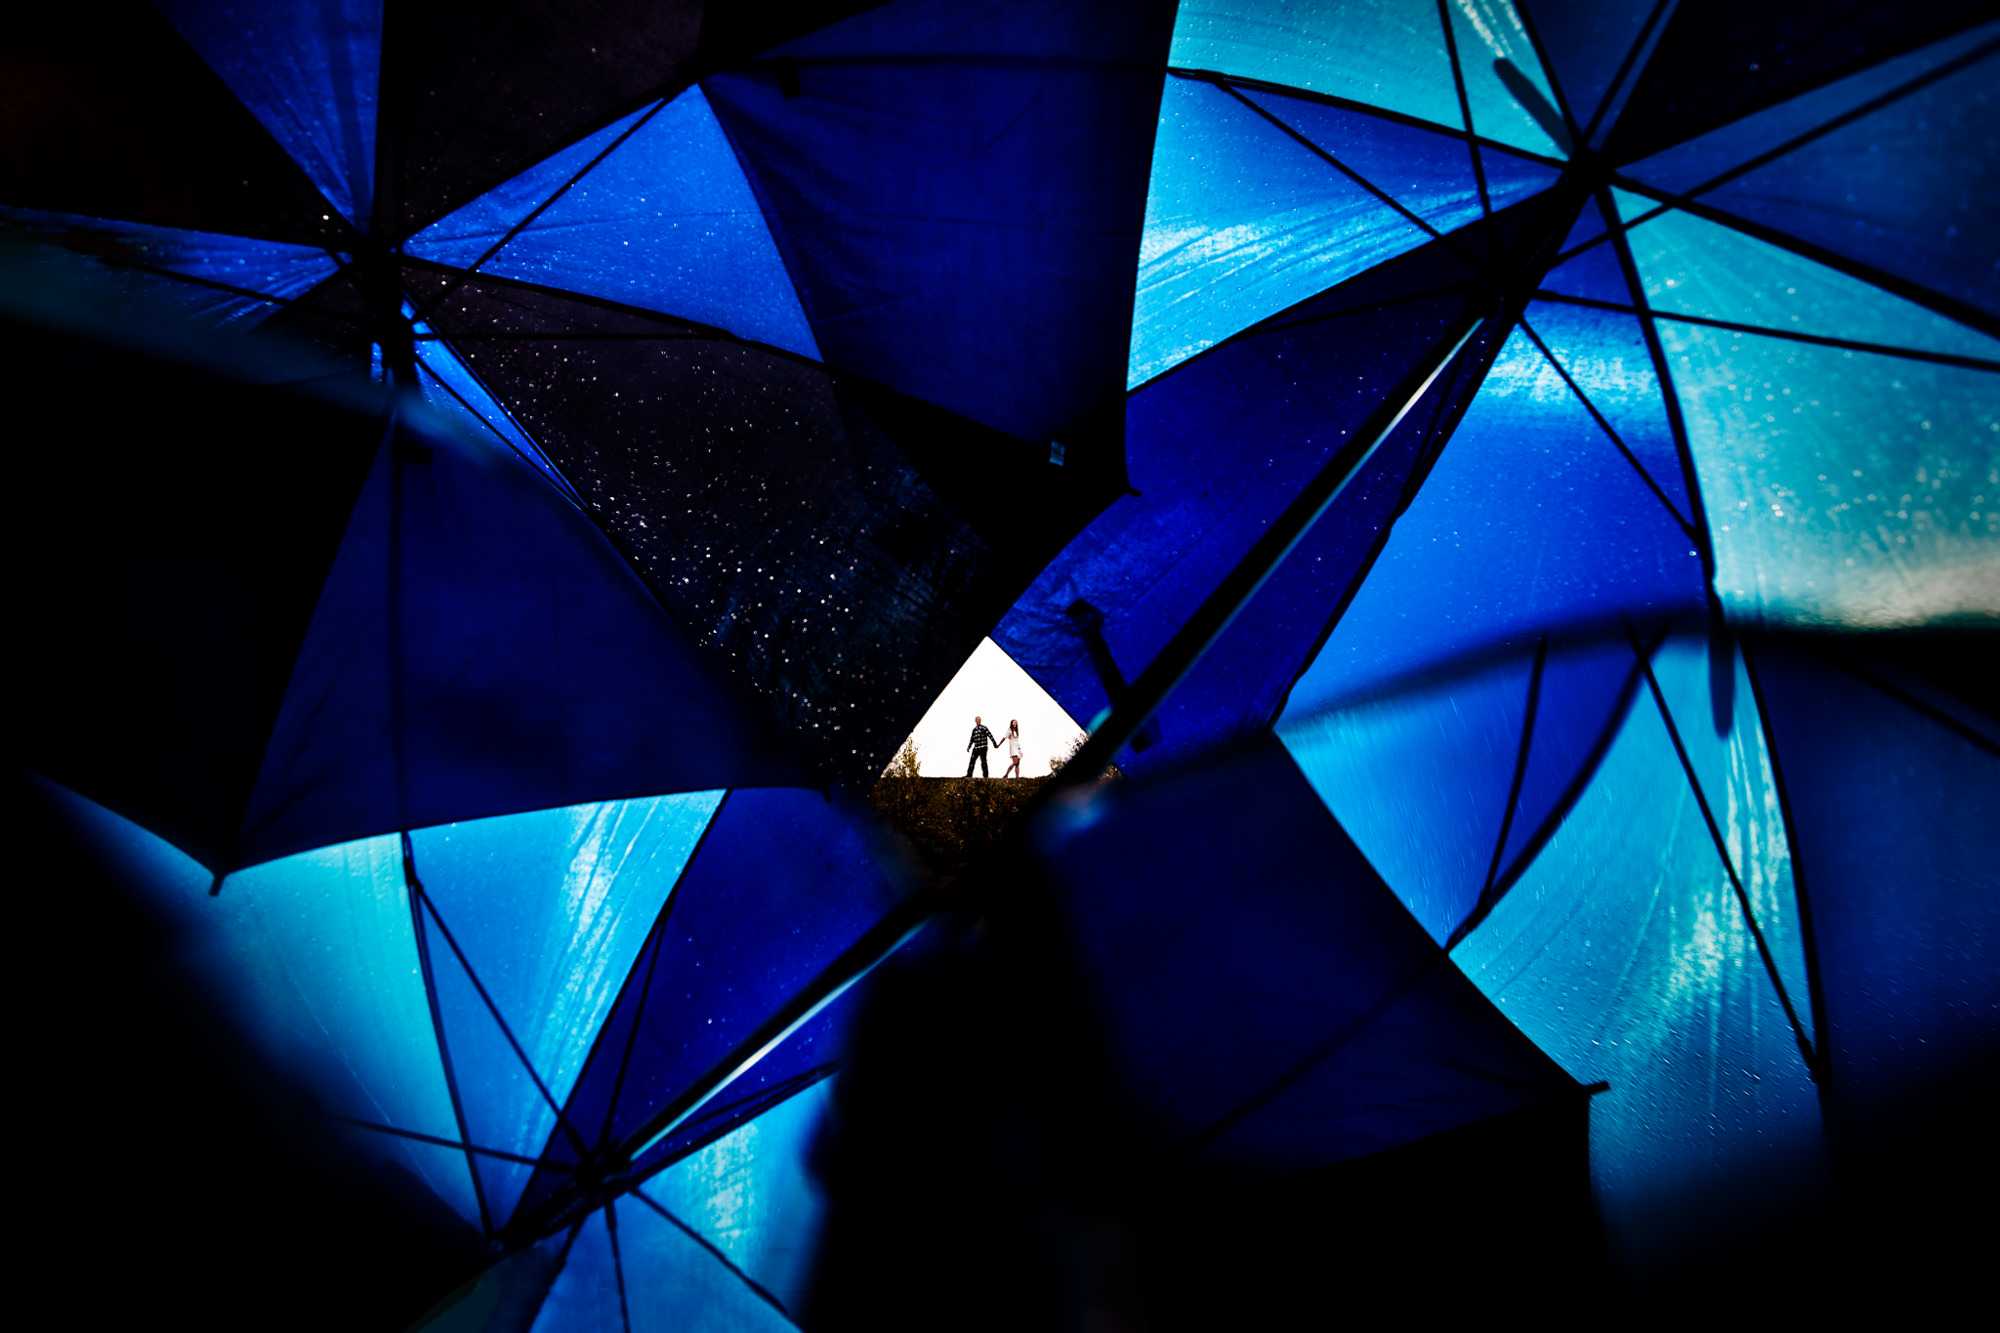 Couple behind geometric design of blue umbrellas - photo by Two Mann Studios